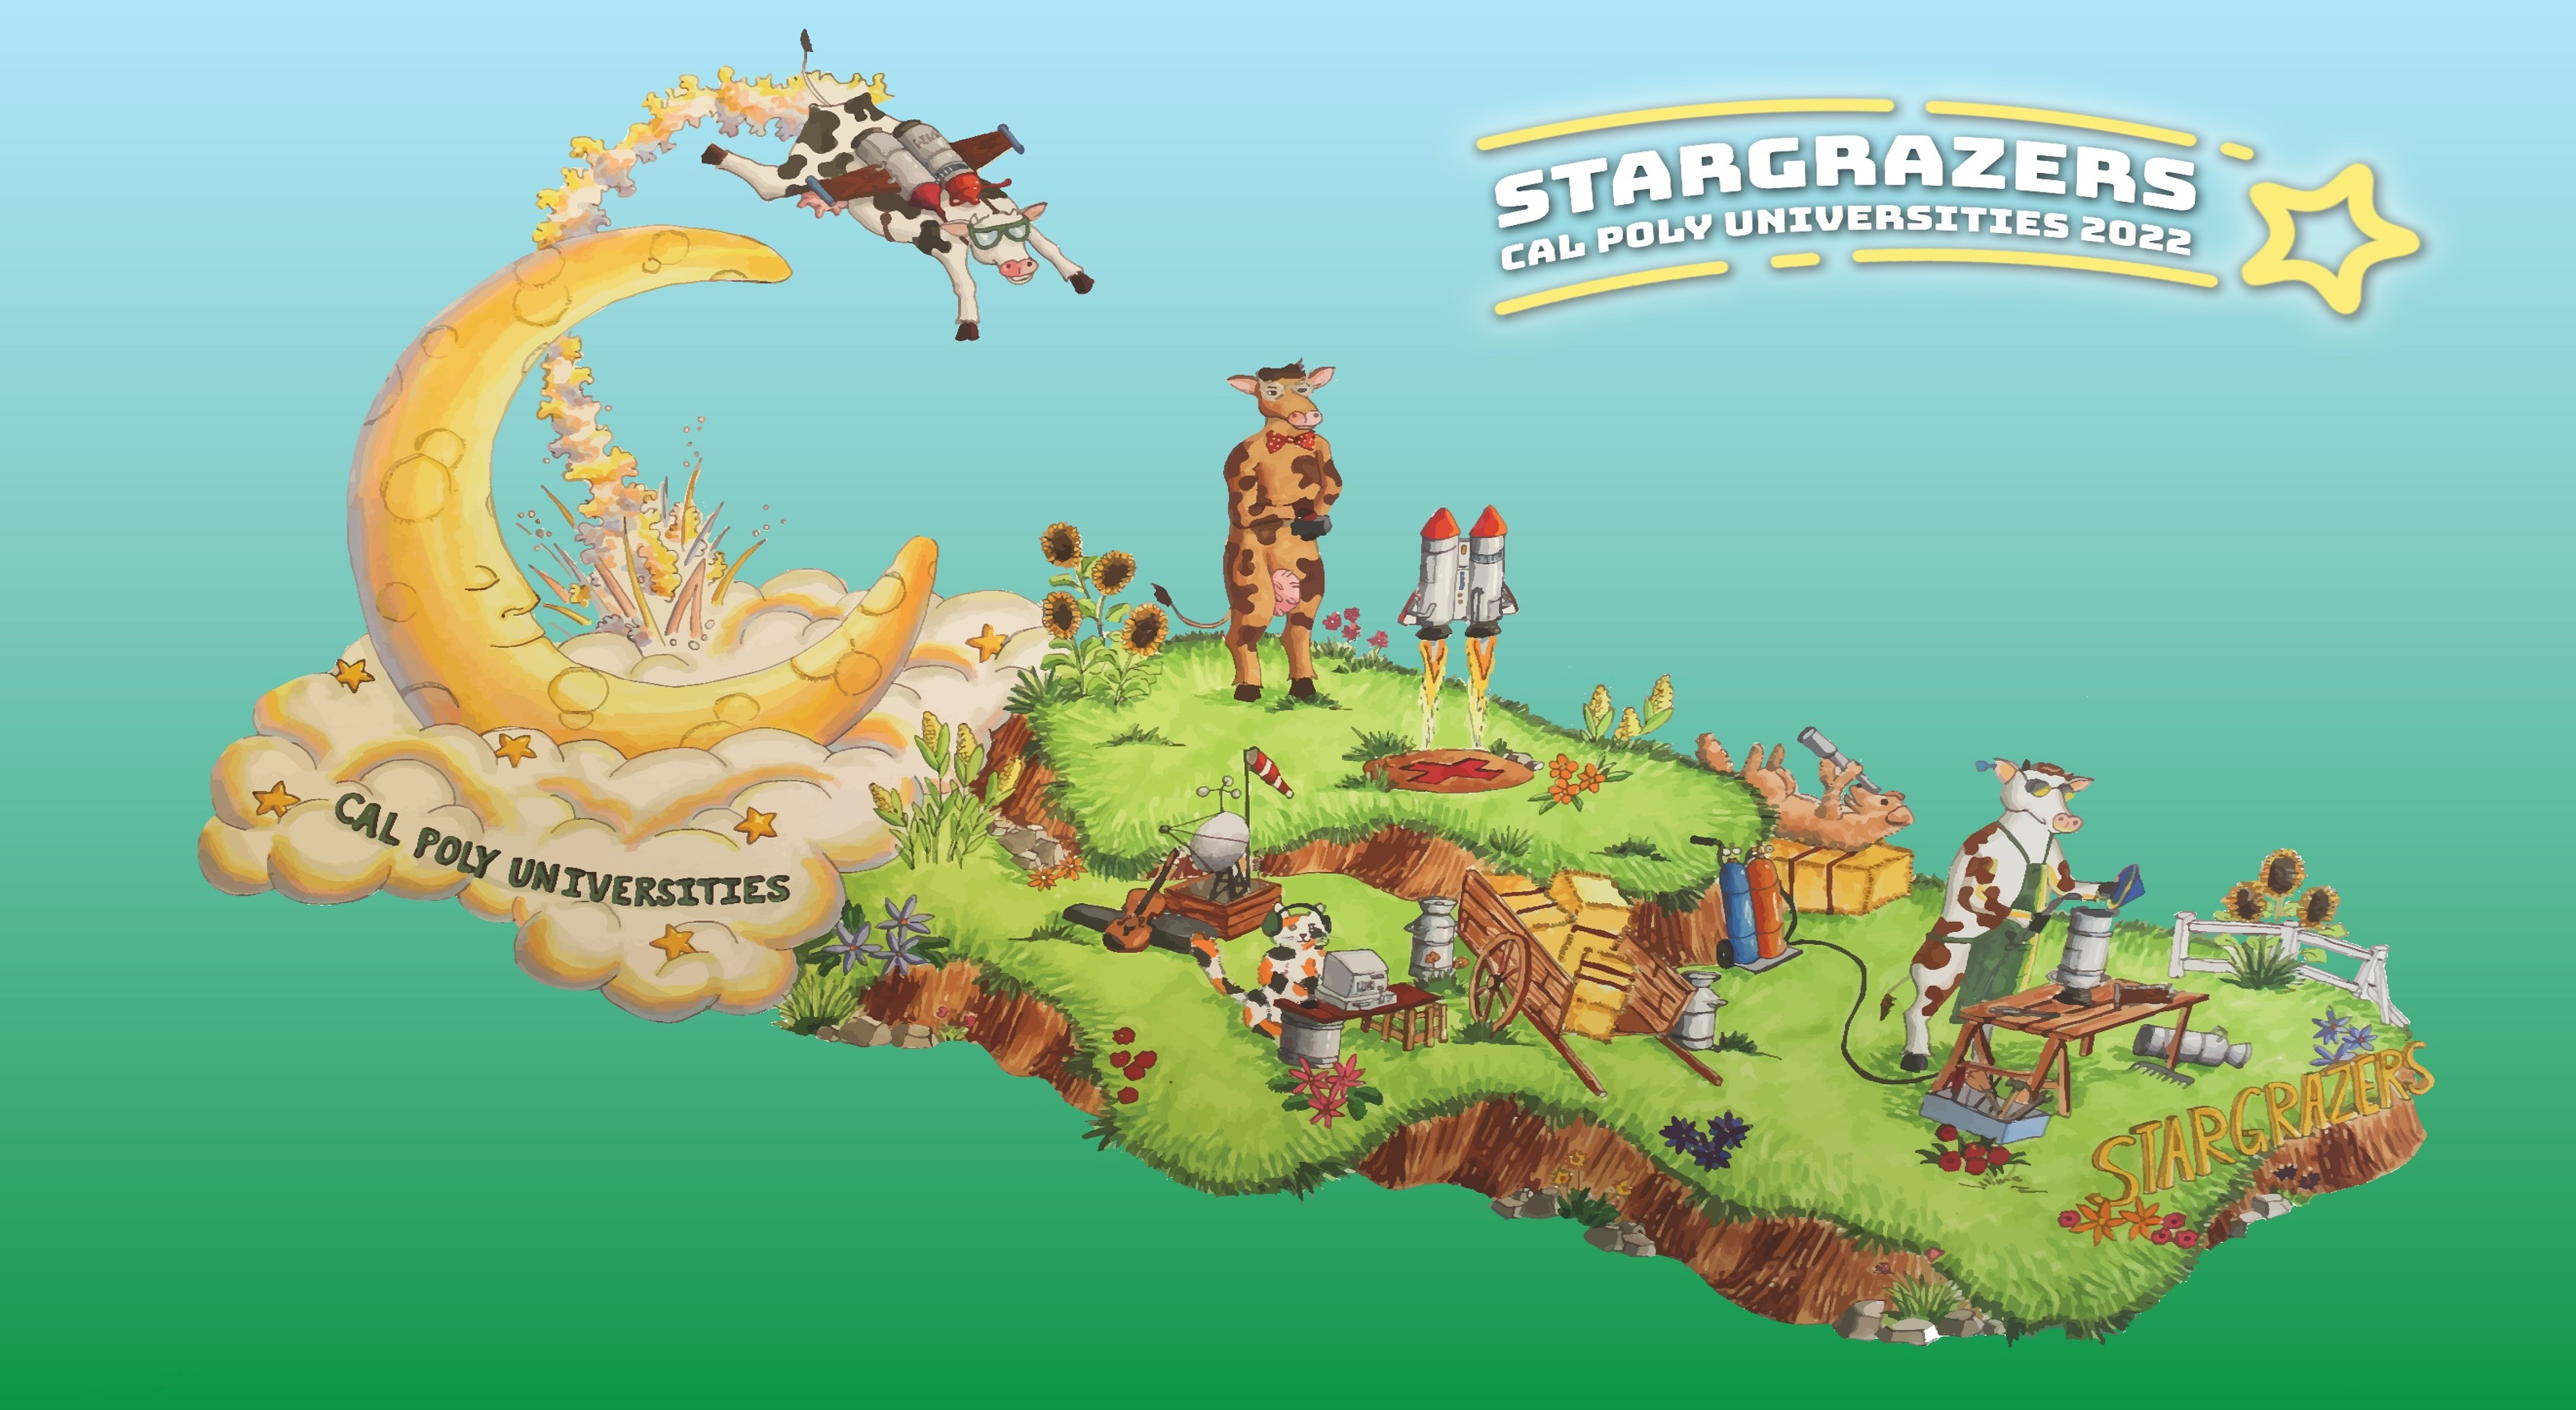 Cal Poly universities' 2022 Tournament of Roses Parade Float rendering.